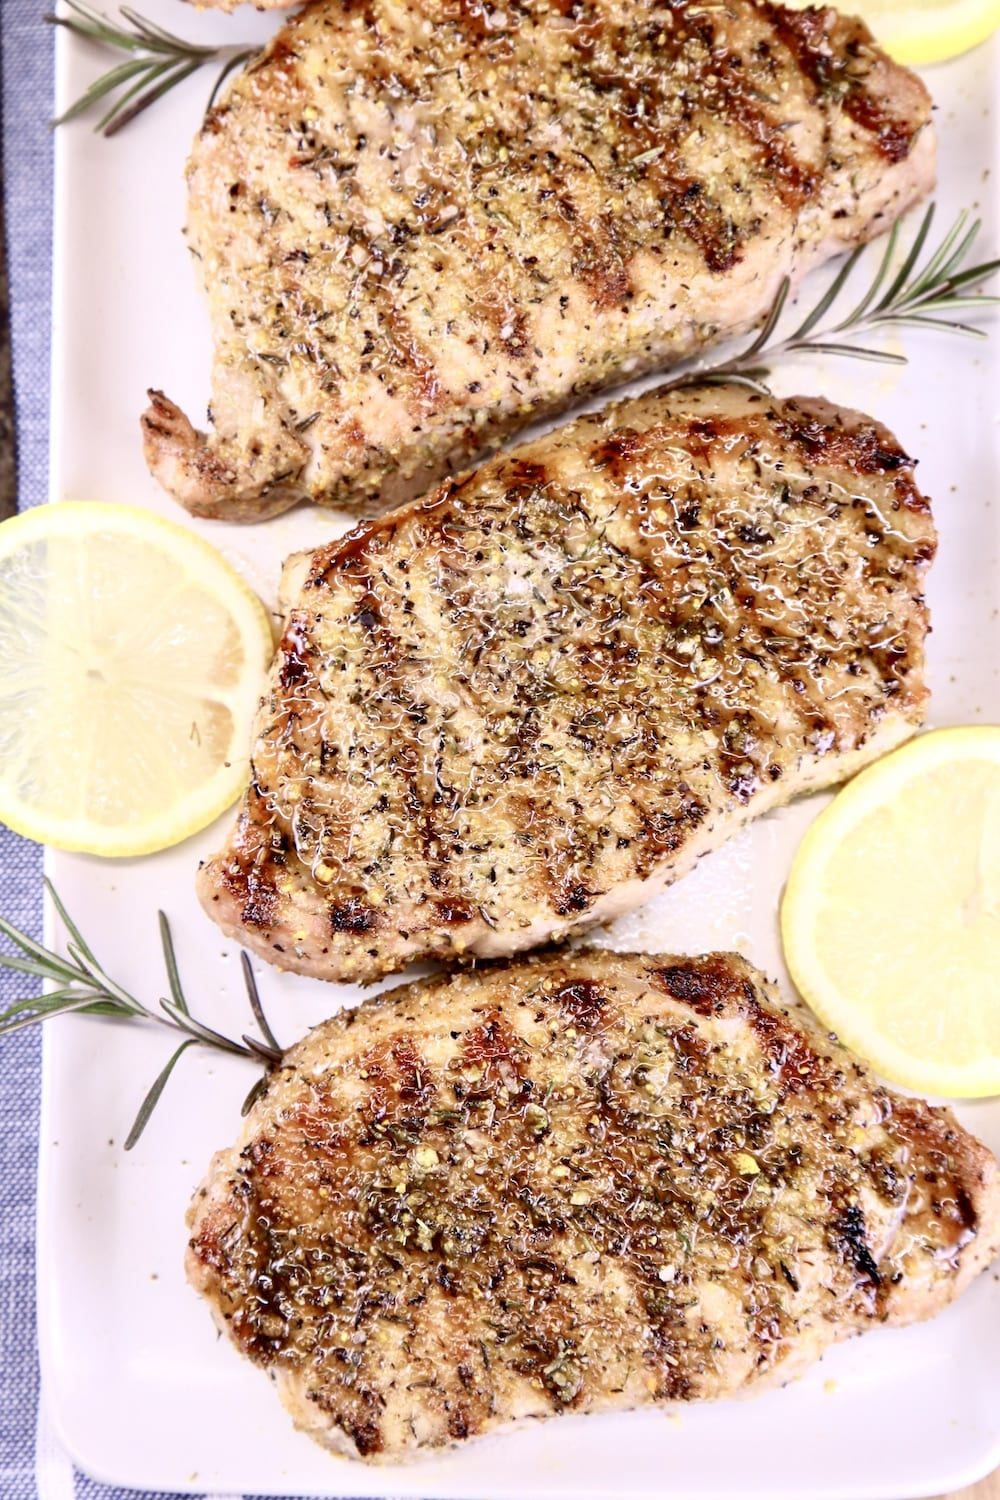 grilled pork chops on a platter with lemon slices and rosemary sprigs